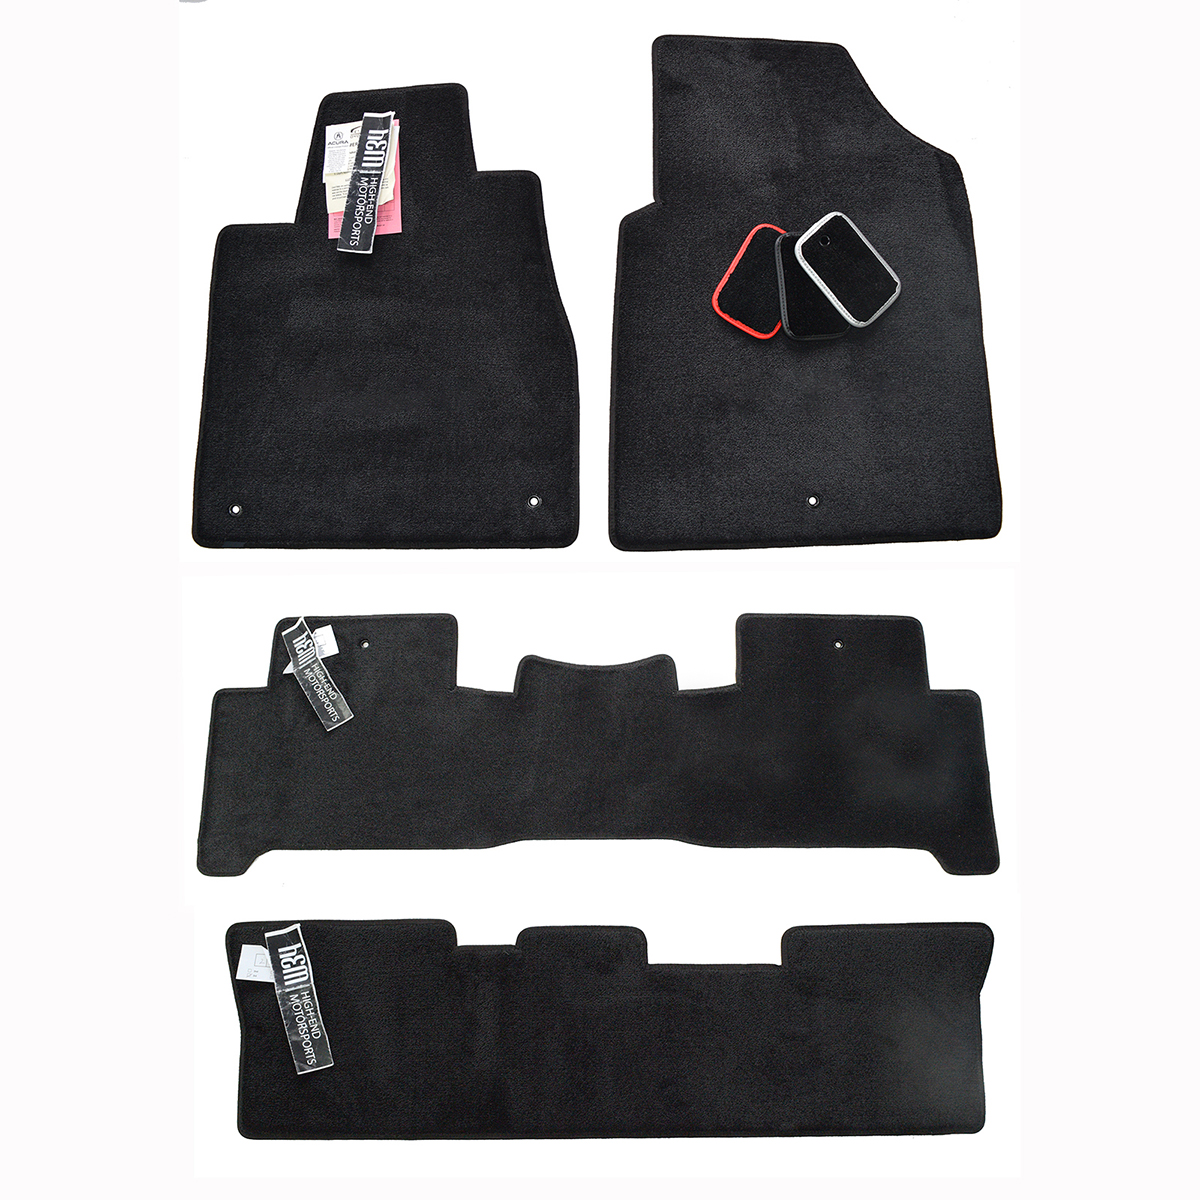 Acura MDX Carpet Floor Mats